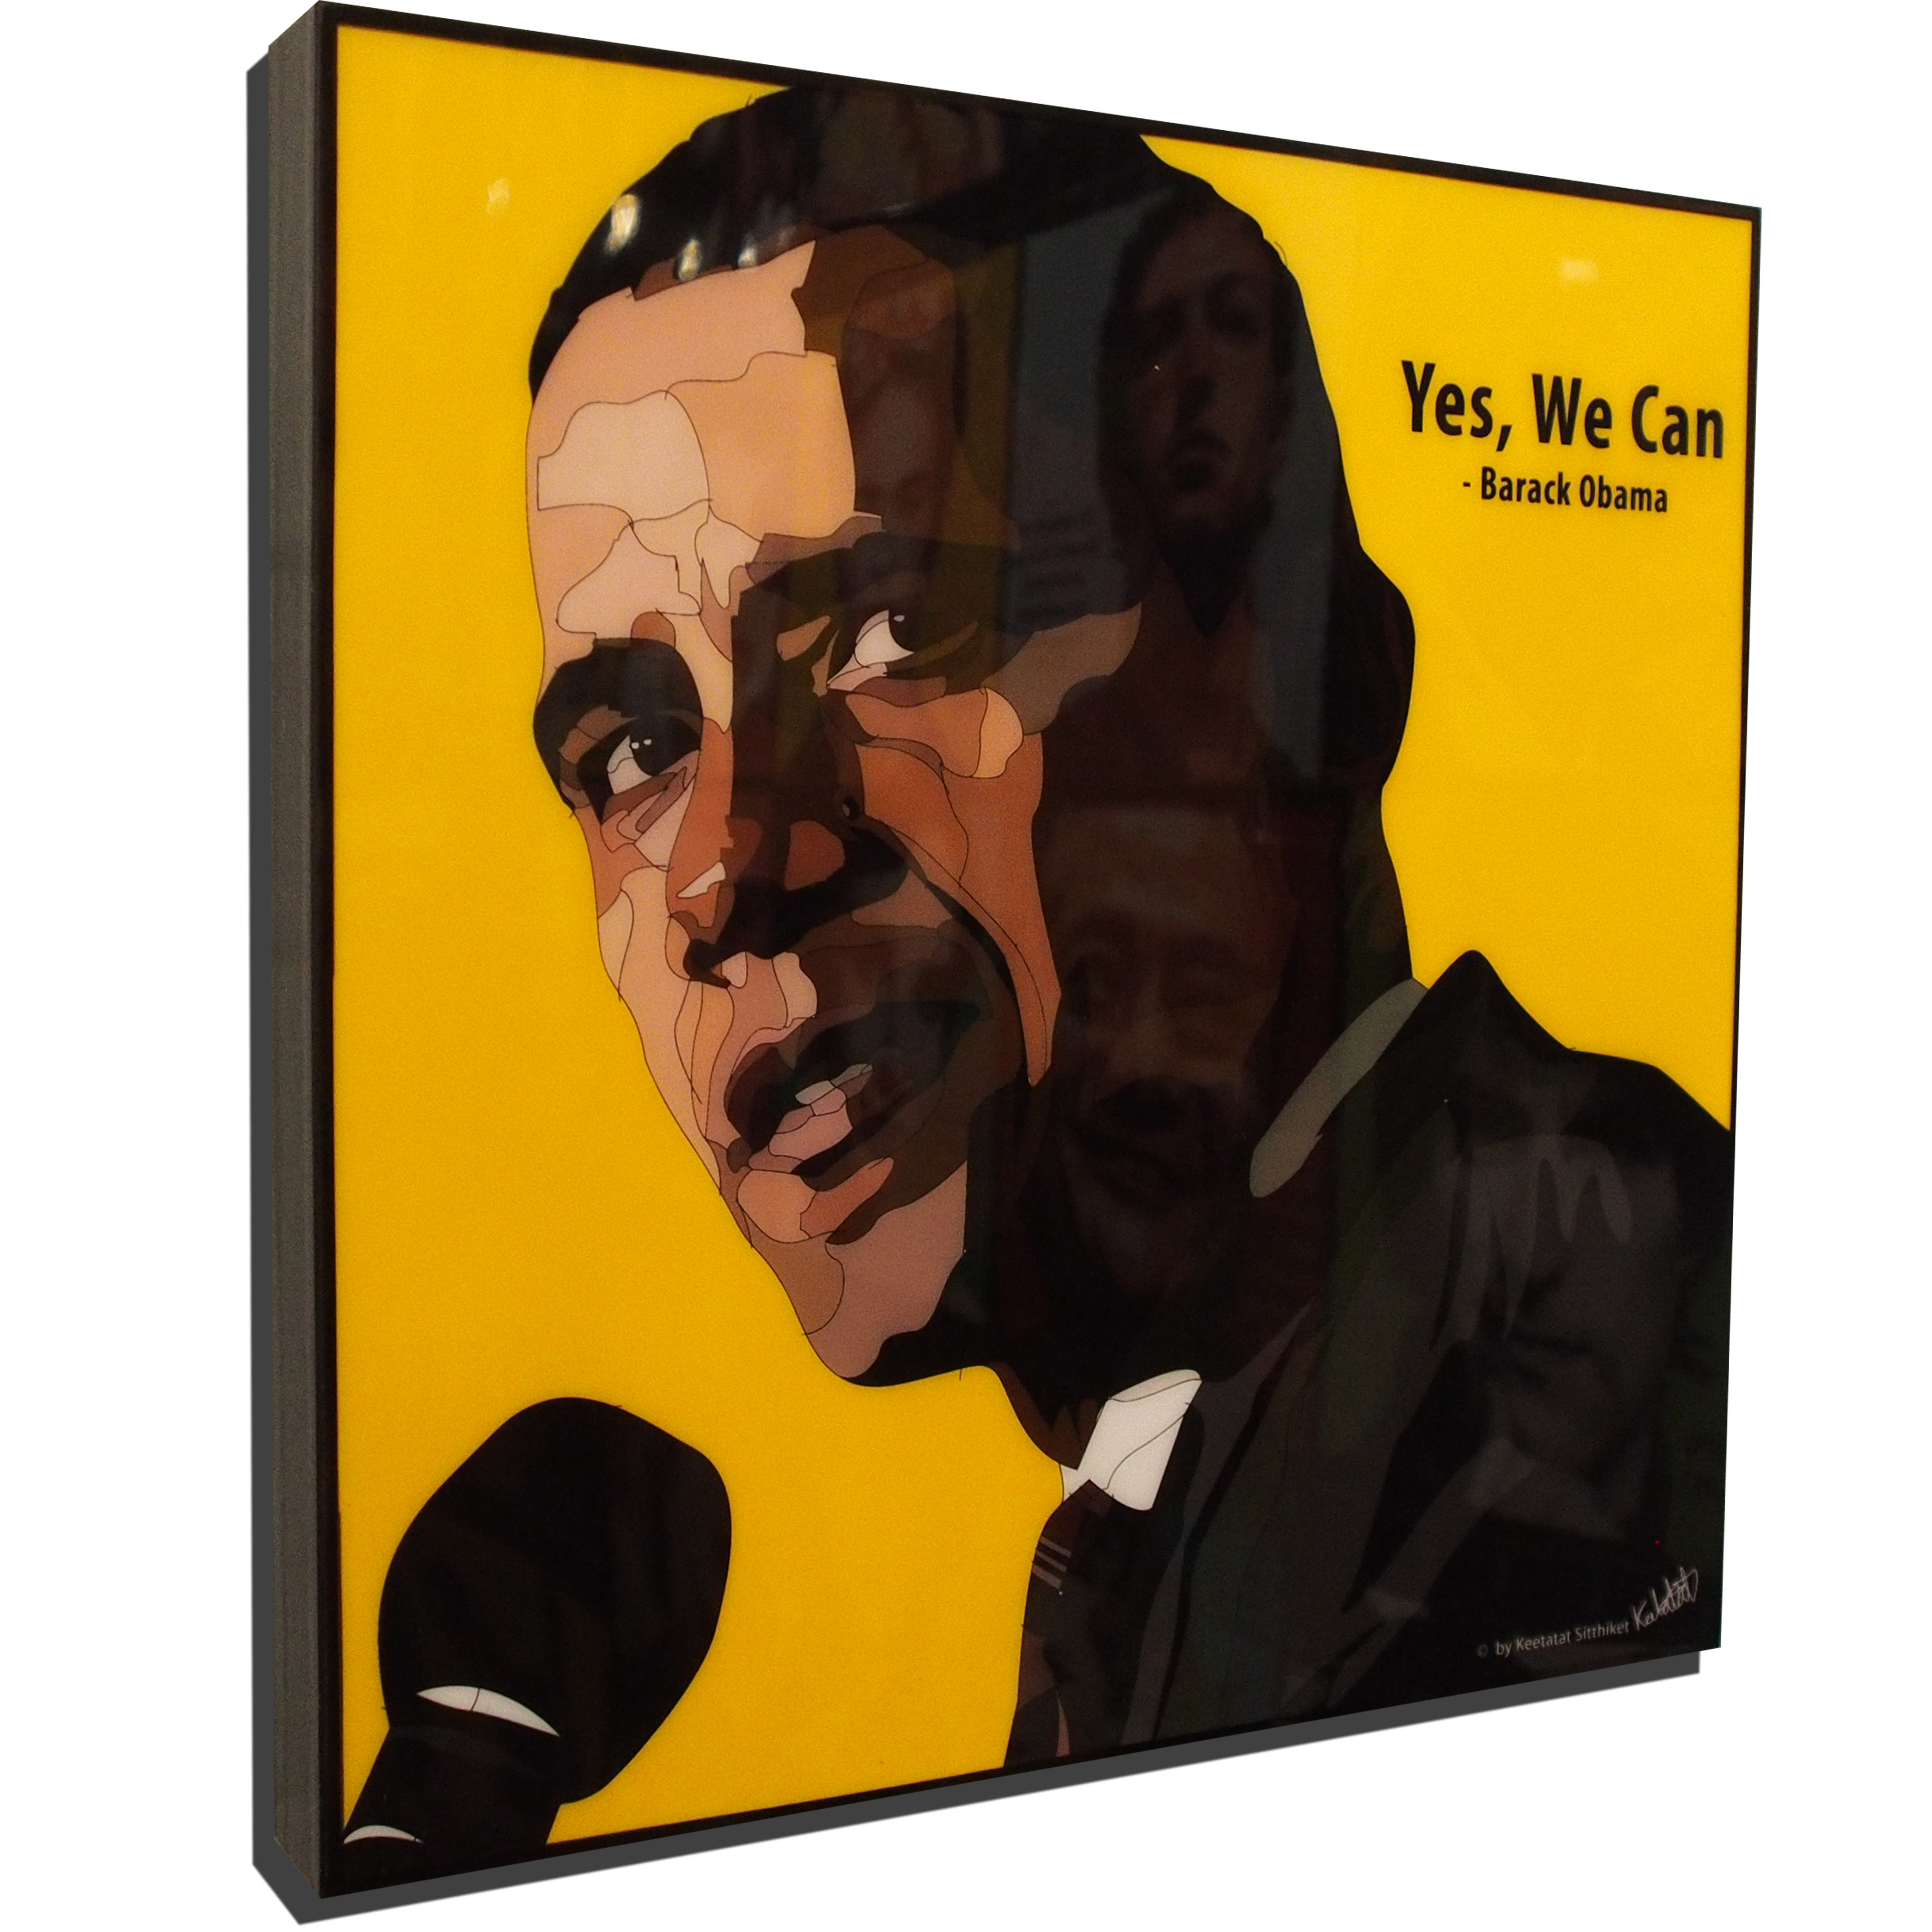 Barack Obama Pop Art Poster Yes We Can Infamous Inspiration